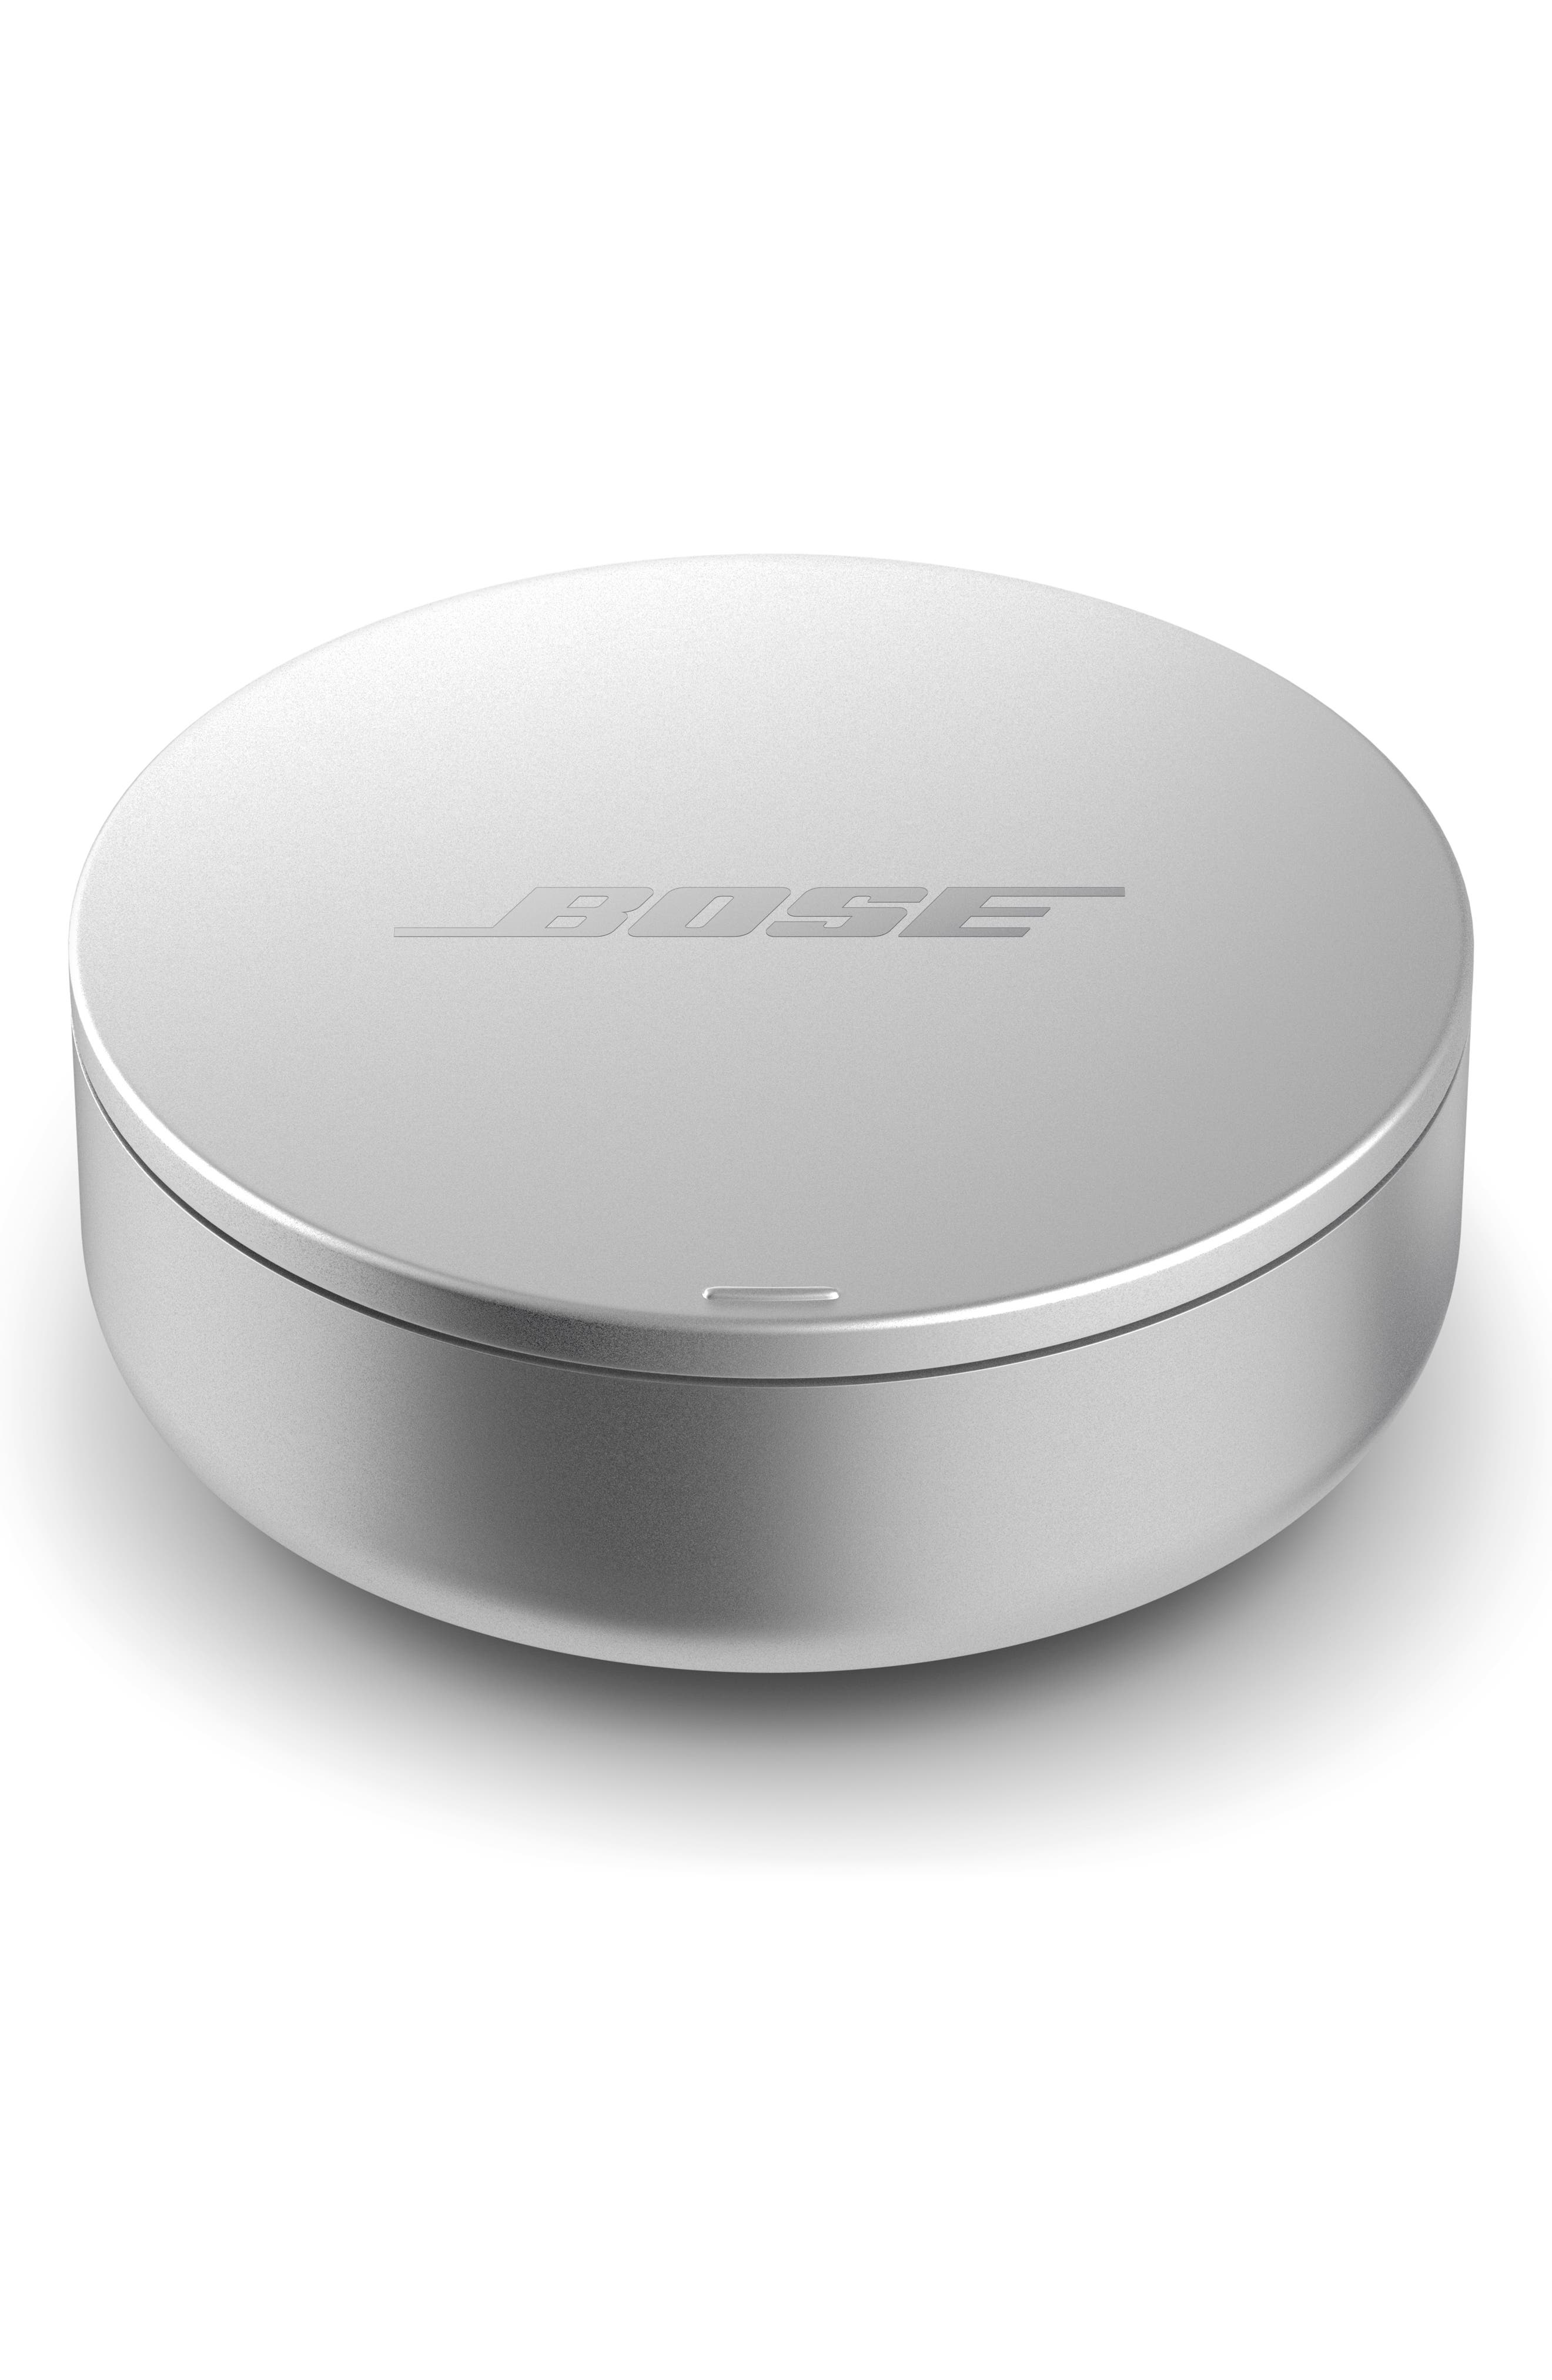 Noise Masking Sleepbuds,                             Alternate thumbnail 6, color,                             WHITE AND SILVER